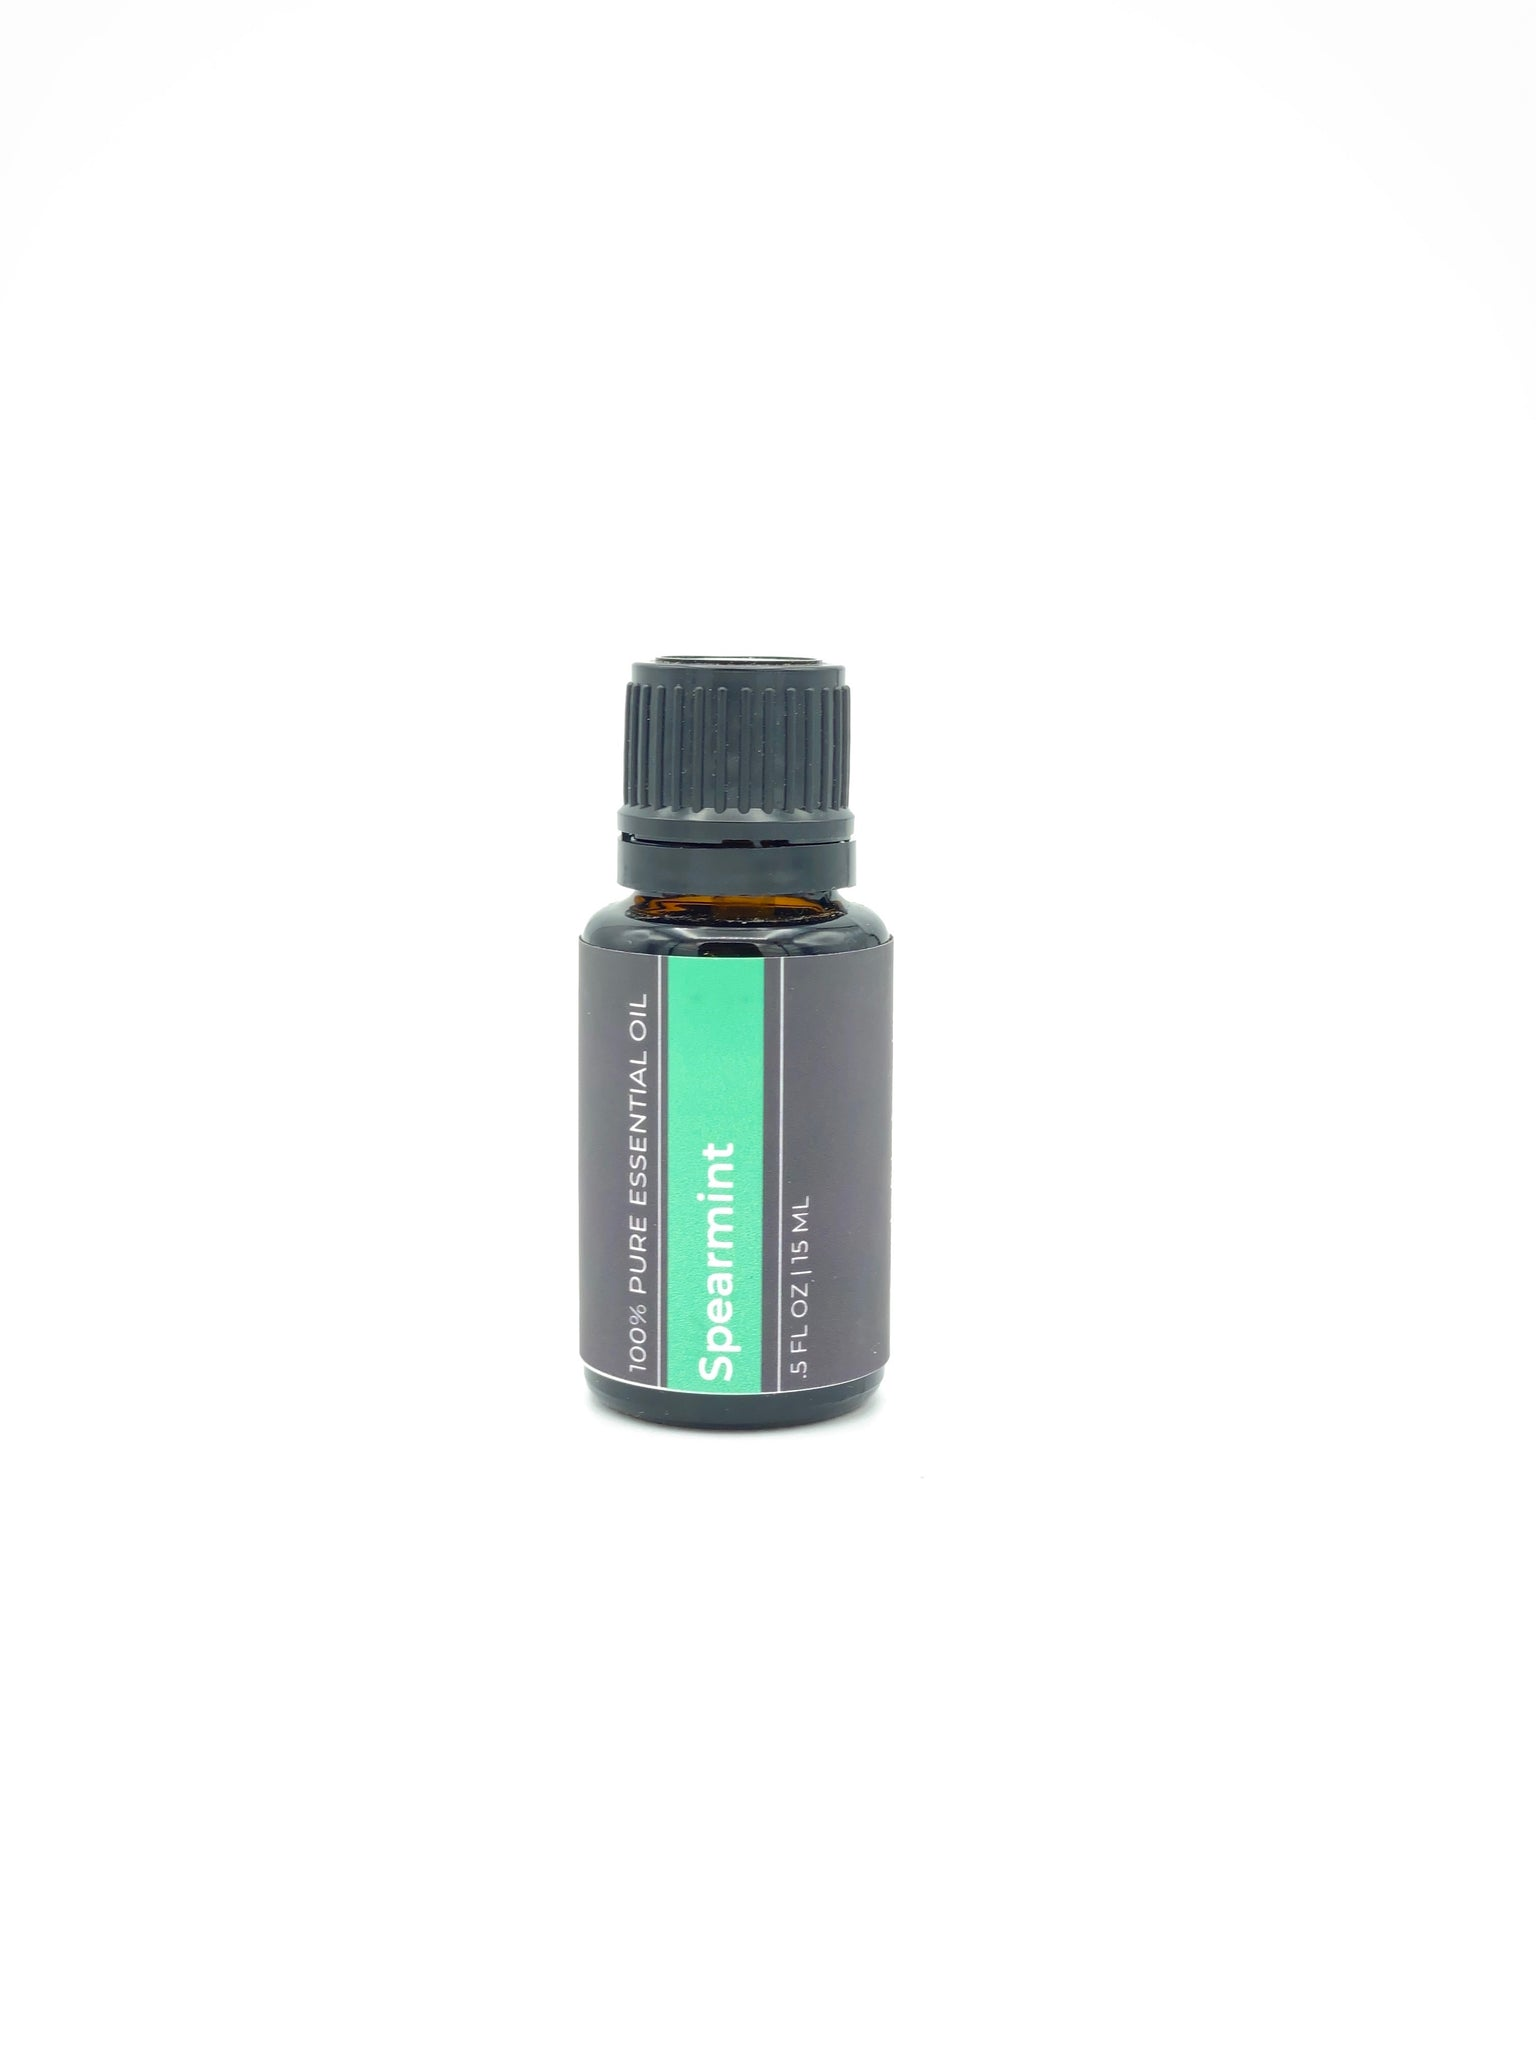 100% Pure Spearmint Essential Oil